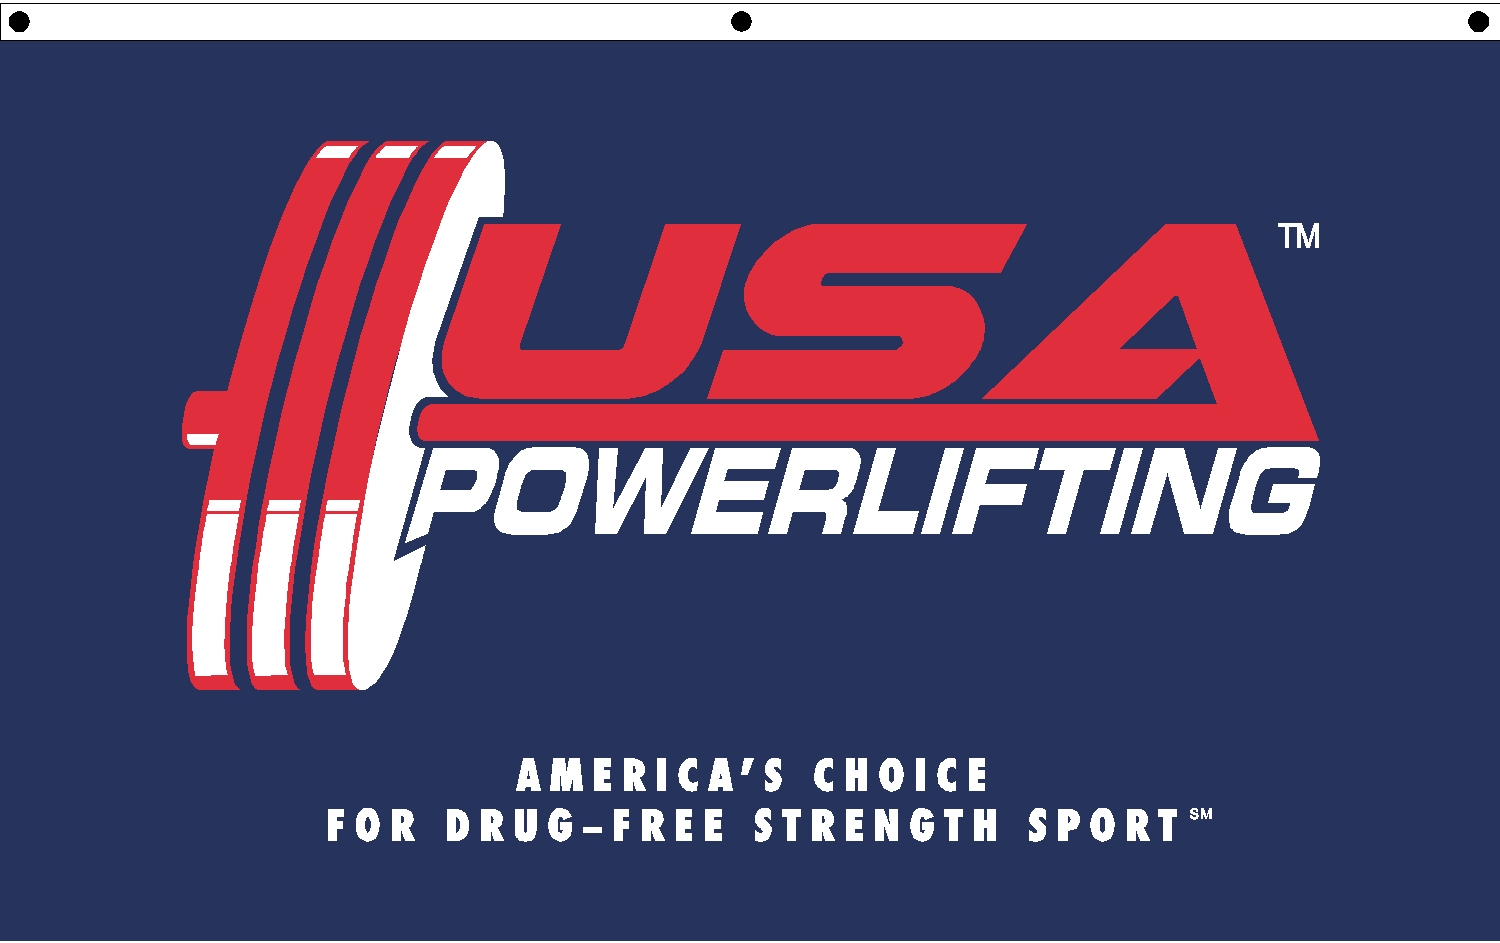 Powerlifting Logos Related Keywords - Powerlifting Logos ...